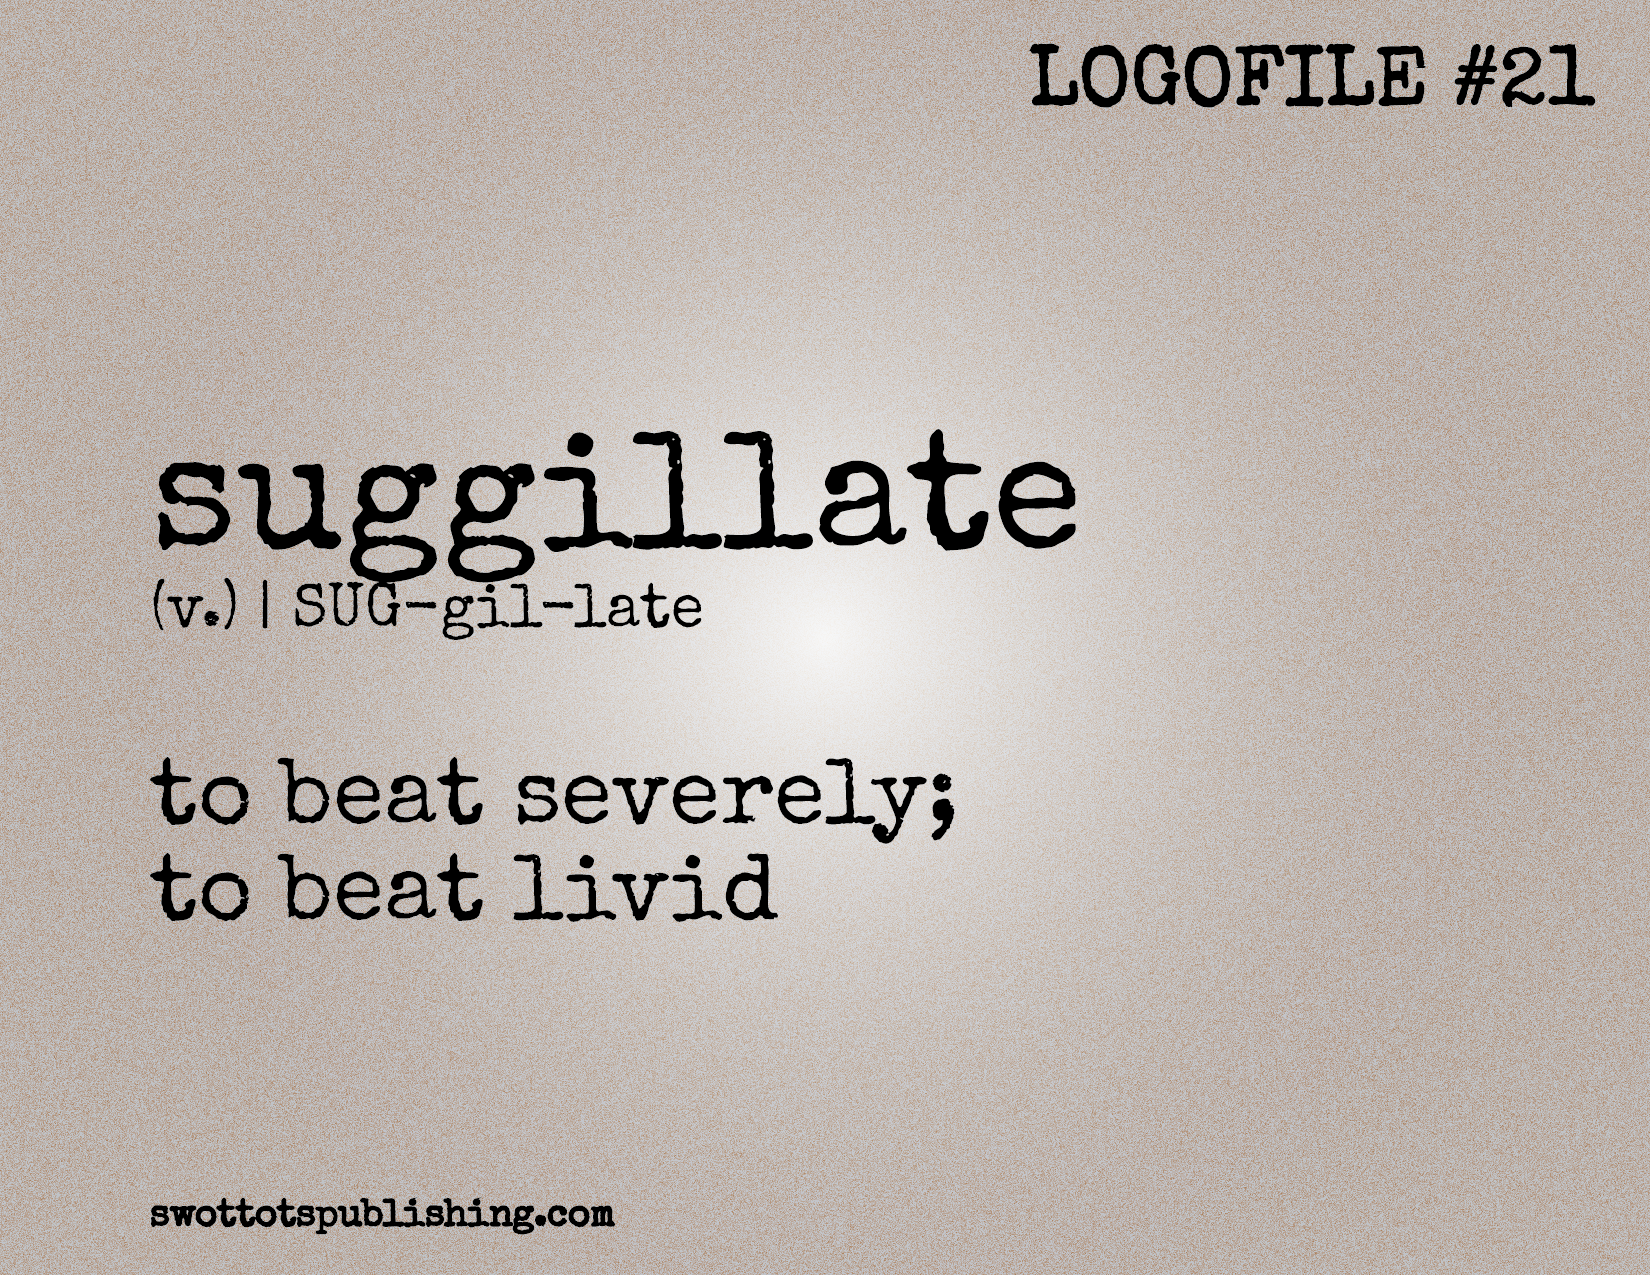 STP Logofile #21 | suggillate (v.)